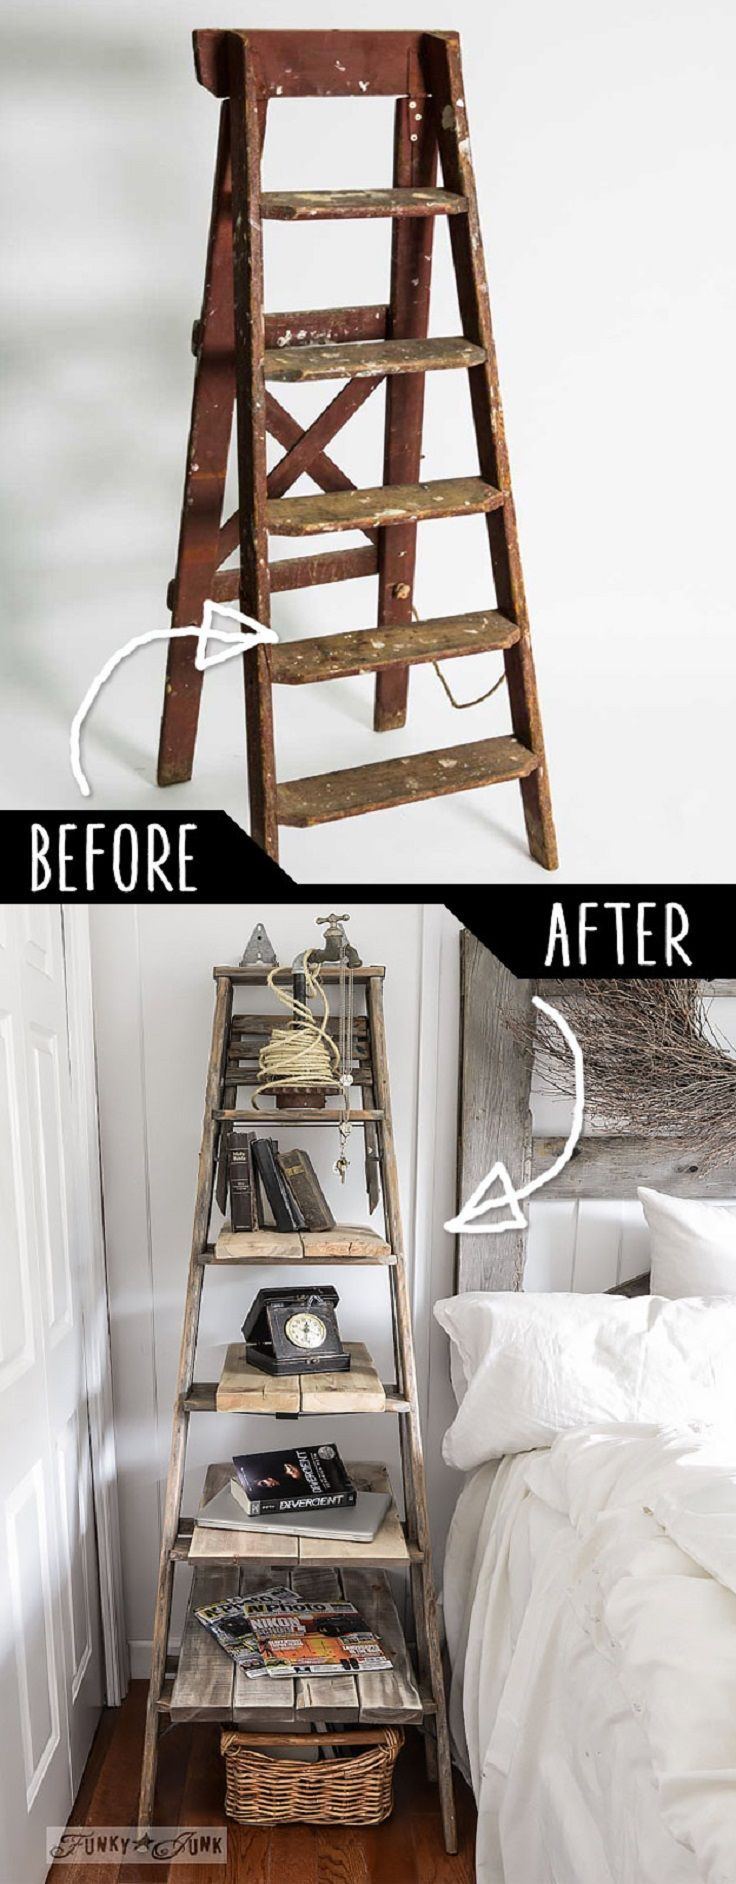 89 best ladders images on pinterest diy blanket ladder stairways 16 best diy furniture projects revealed update your home on a budget solutioingenieria Image collections